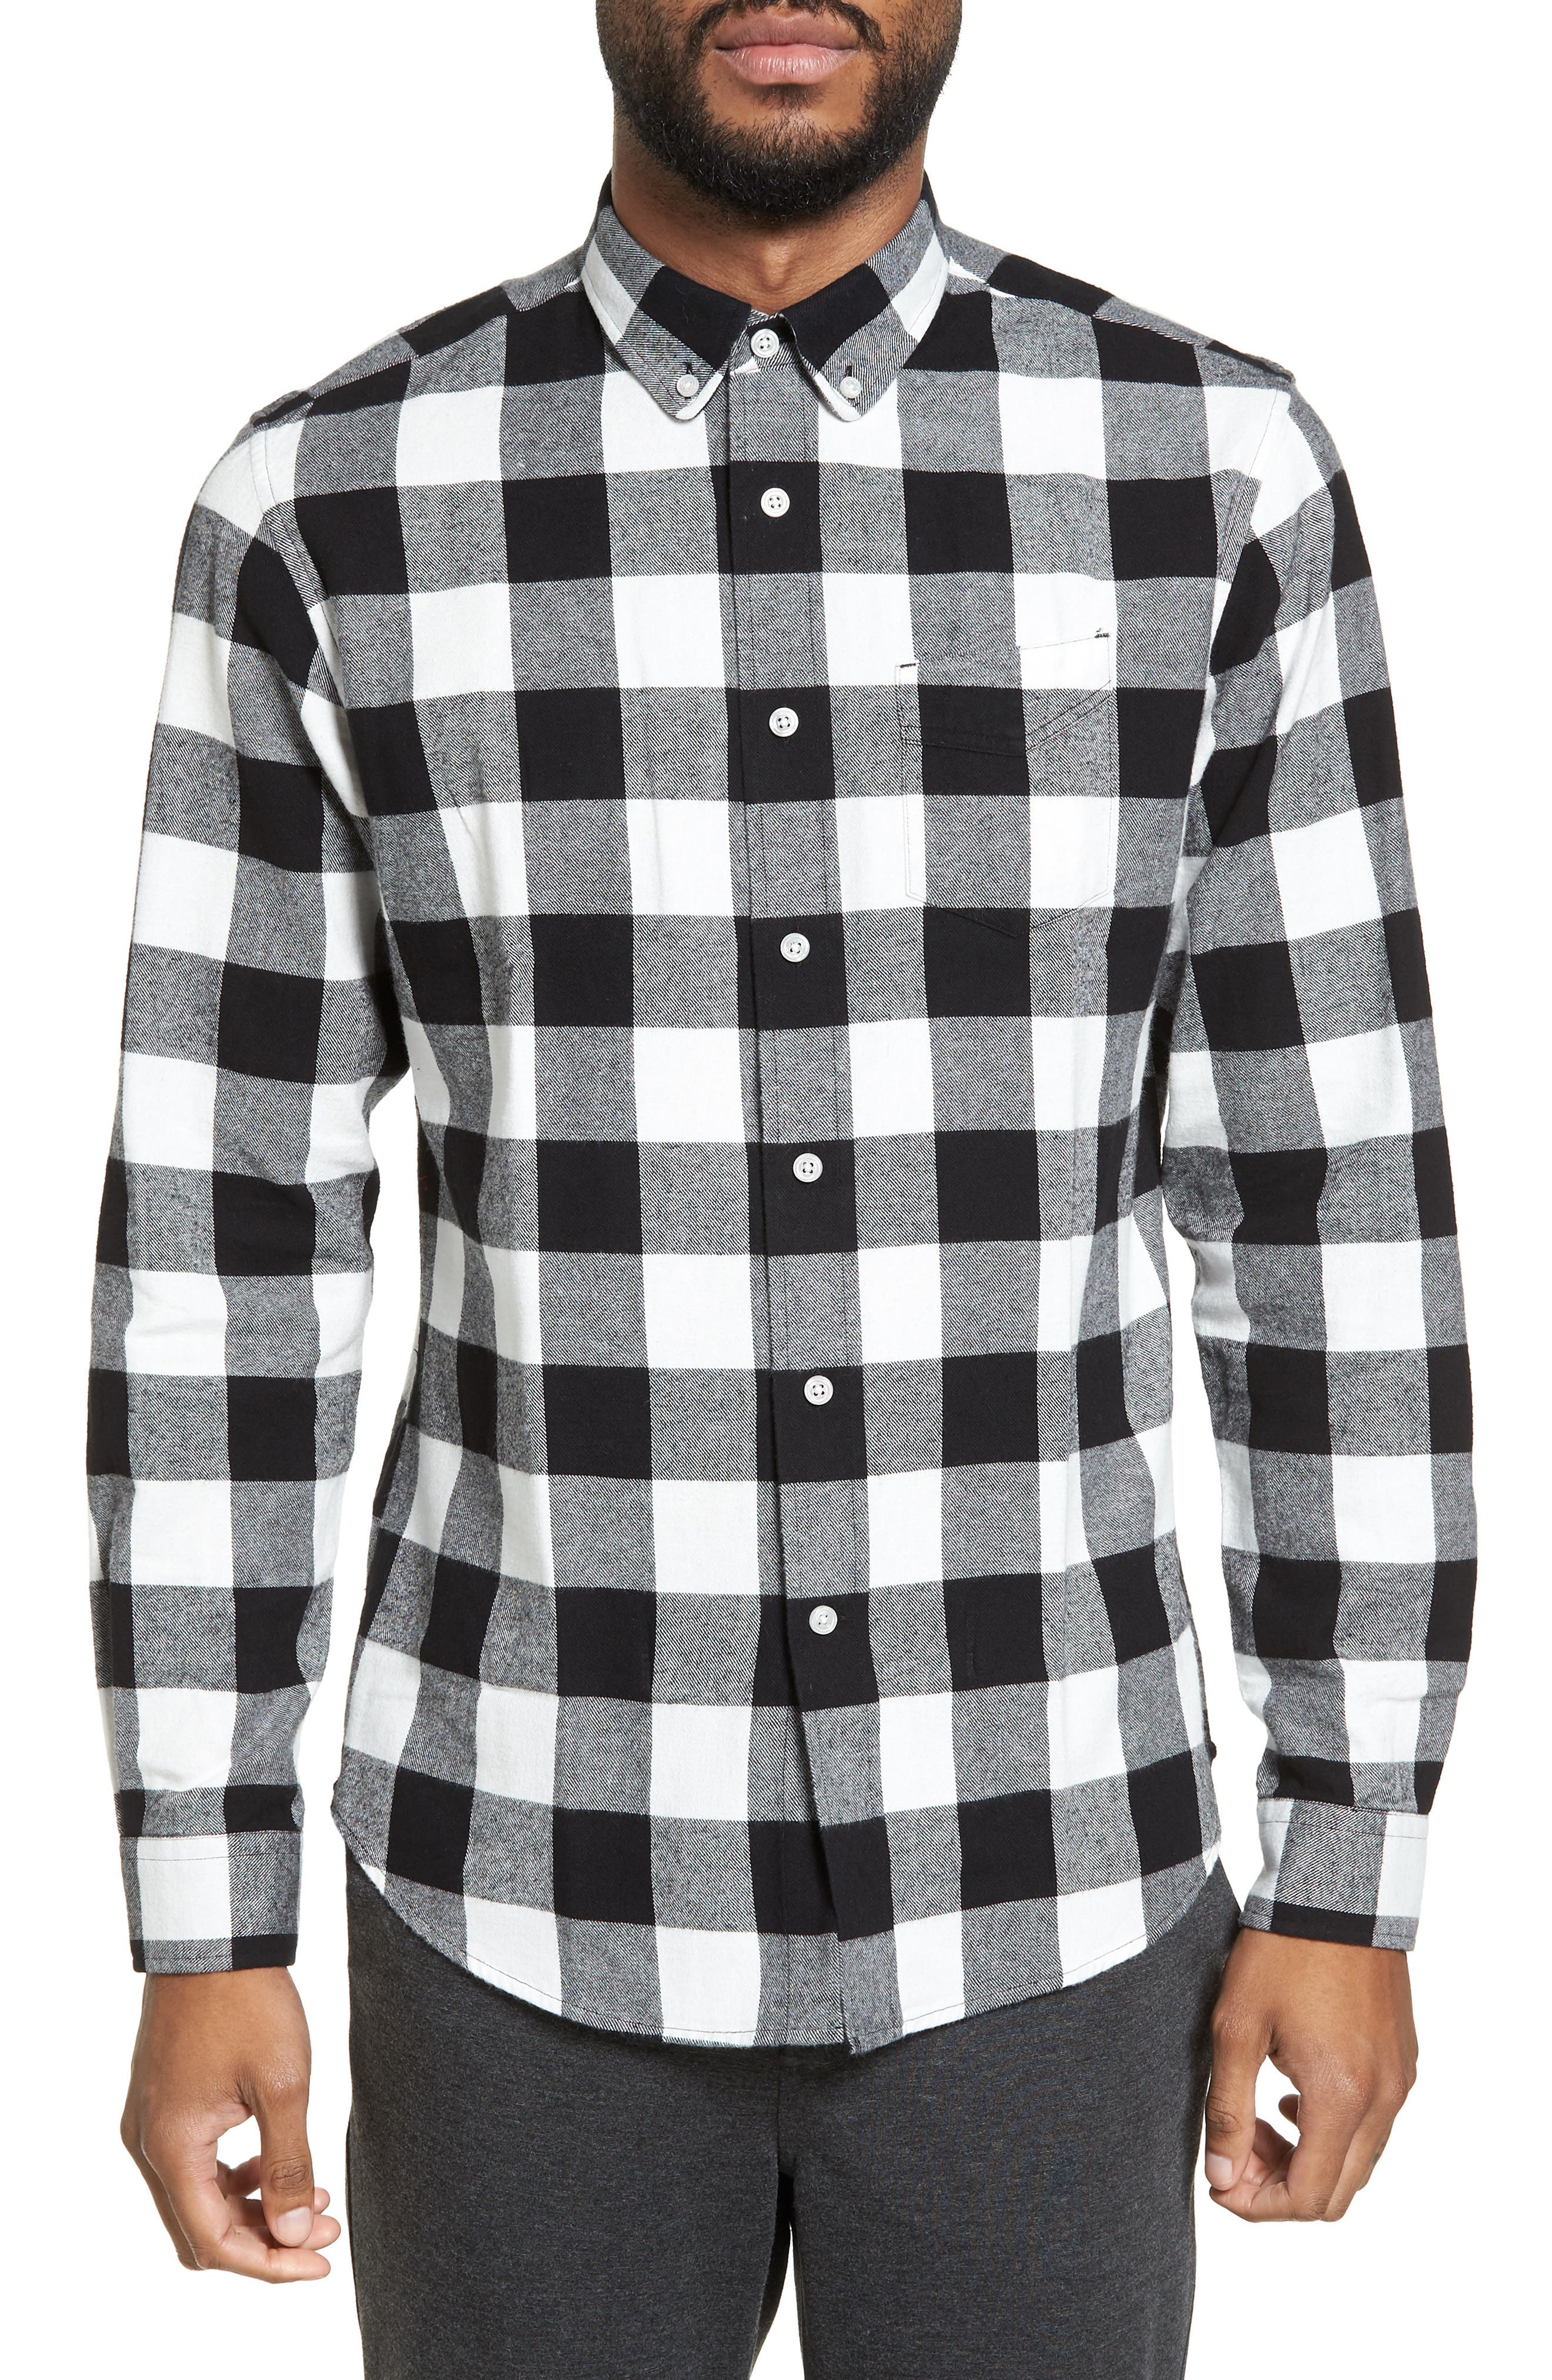 Trim Fit Buffalo Plaid Flannel Sport Shirt,                             Main thumbnail 1, color,                             Black/ White Buffalo Plaid